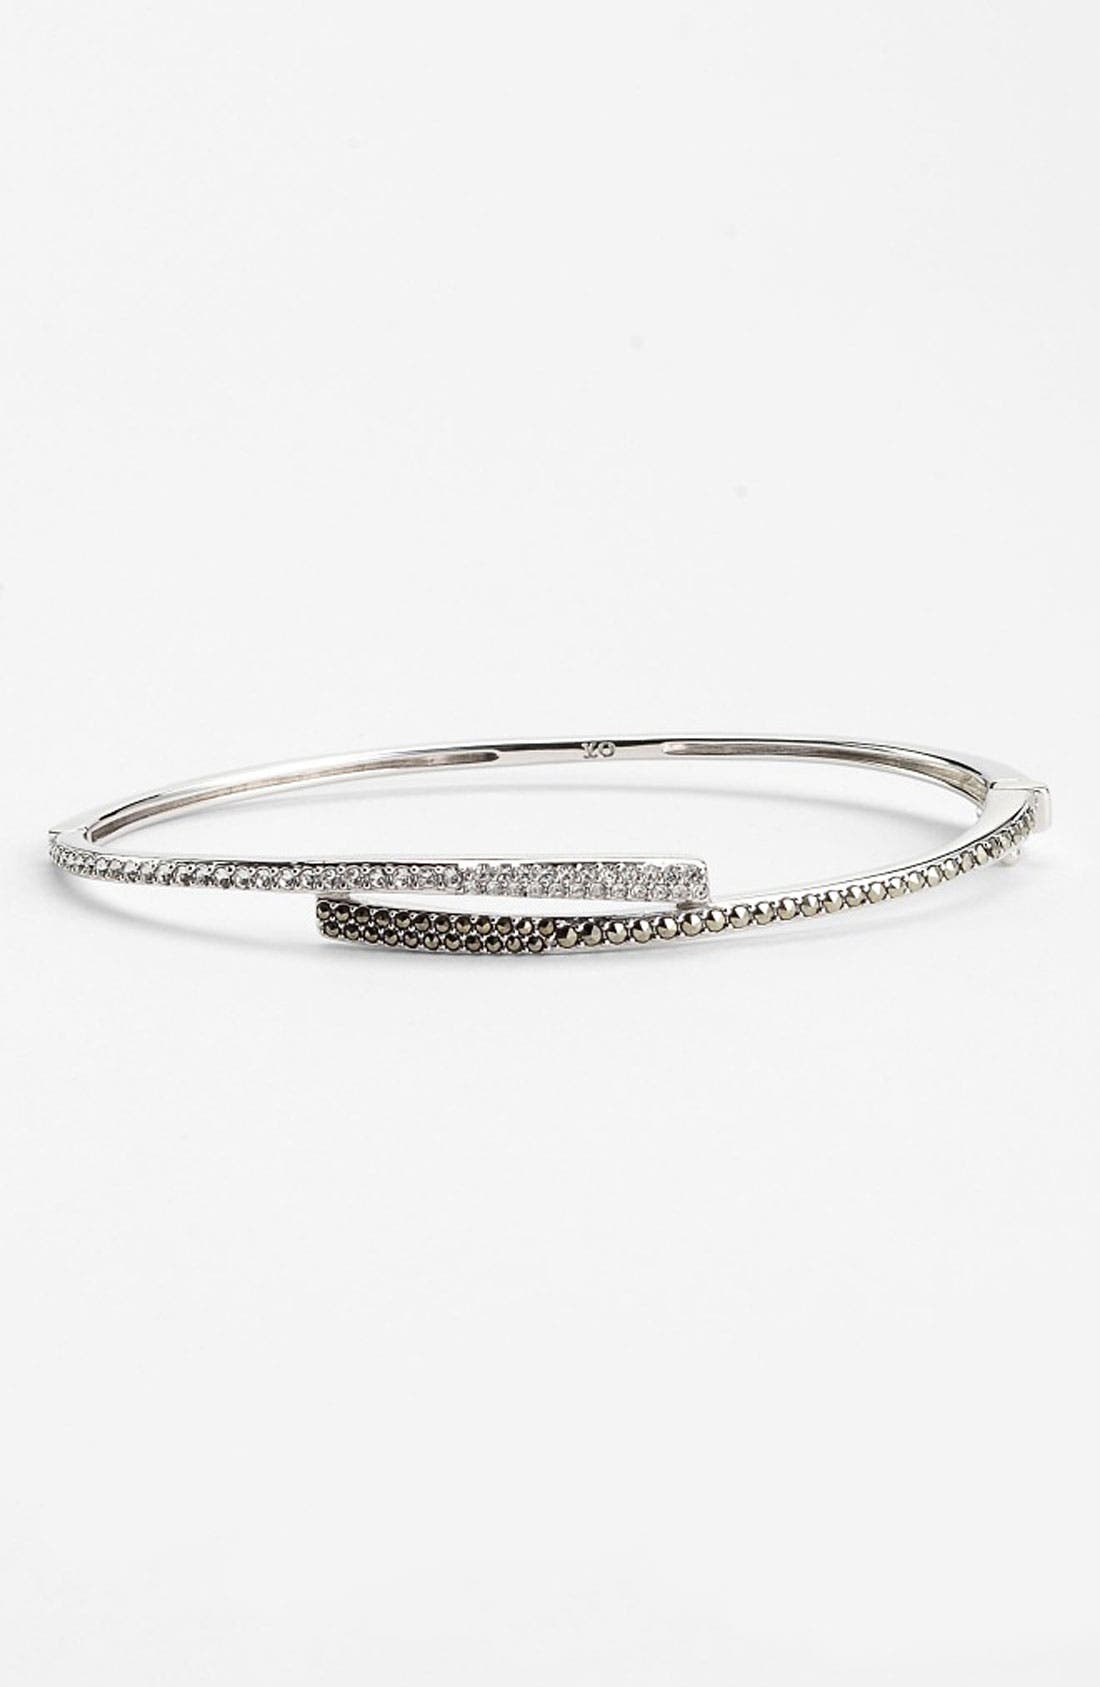 Main Image - Judith Jack 'Crystal Glitz' Bangle Bracelet